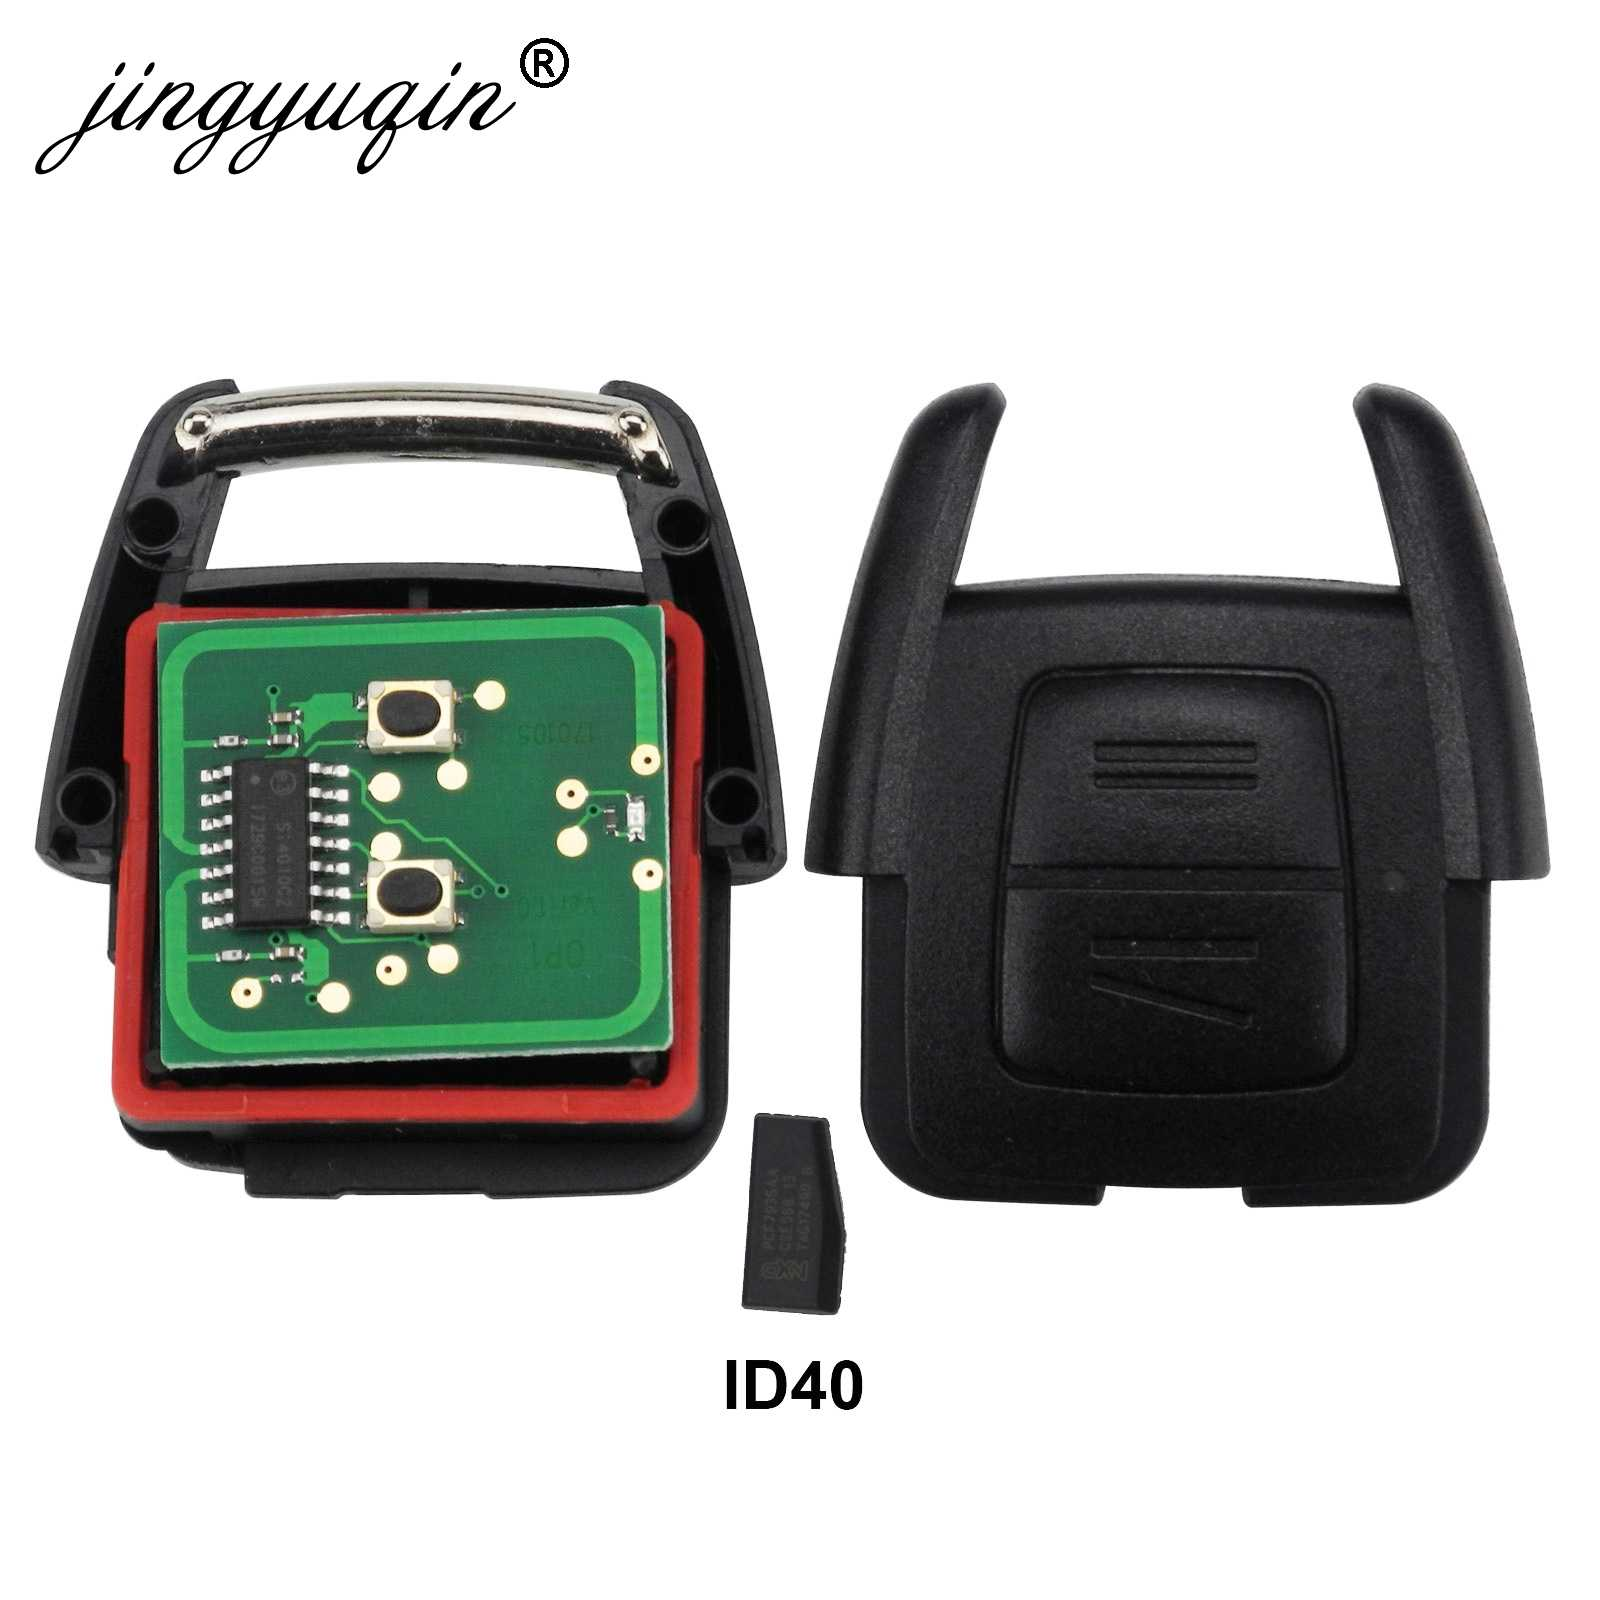 Jingyuqin 2 boutons 433Mhz Fob clé à distance pour Opel Vauxhall Vectra Zafira OP1 24424723 ID40 puce